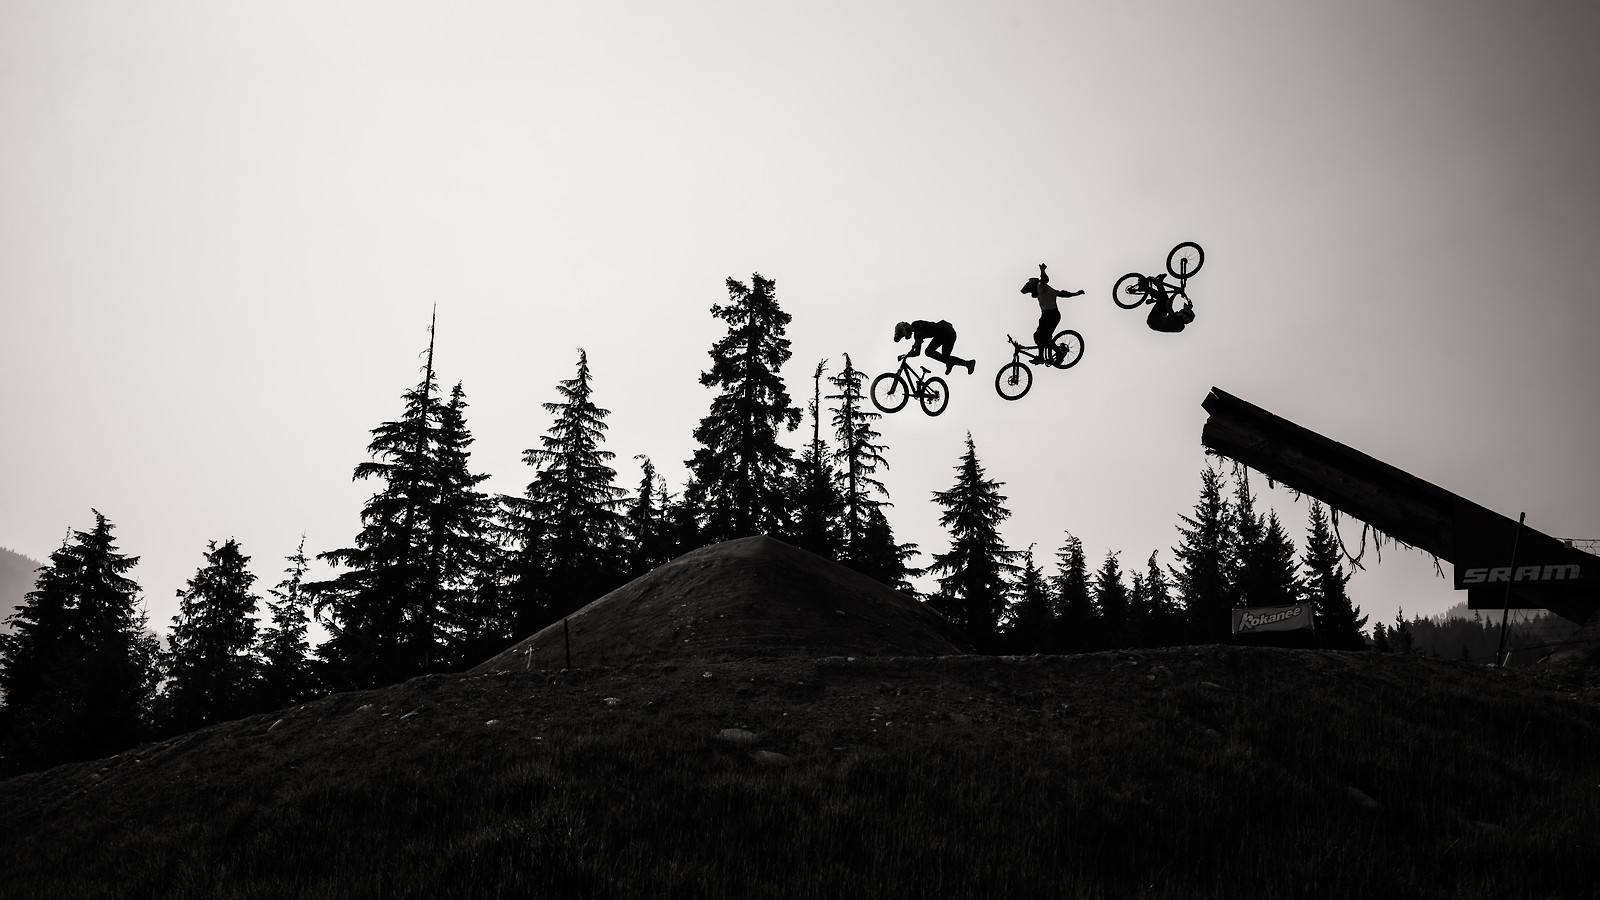 3 airs - phunkt.com - Mountain Biking Pictures - Vital MTB